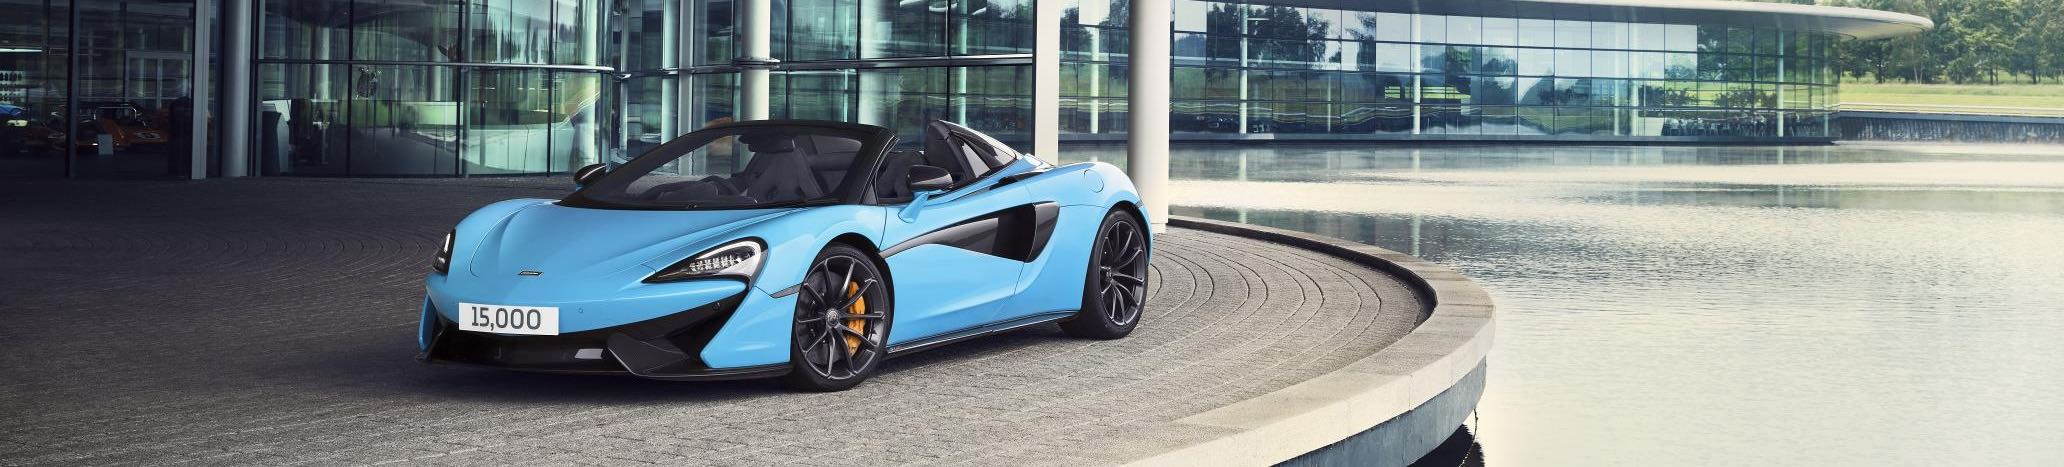 McLAREN AUTOMOTIVE PASSES 15,000 CARS BUILT MILESTONE